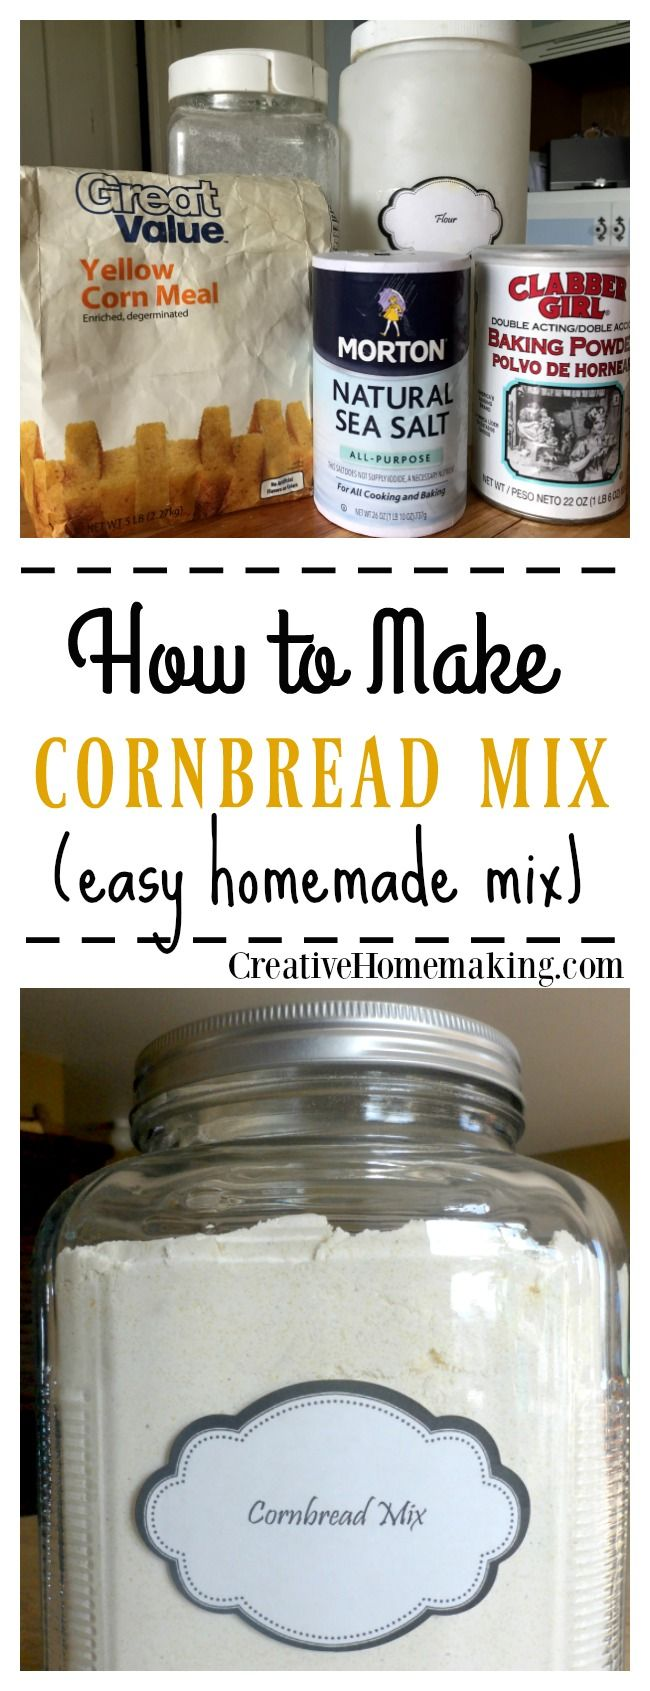 You can quickly and easily make your own cornbread from this homemade cornbread mix recipe.